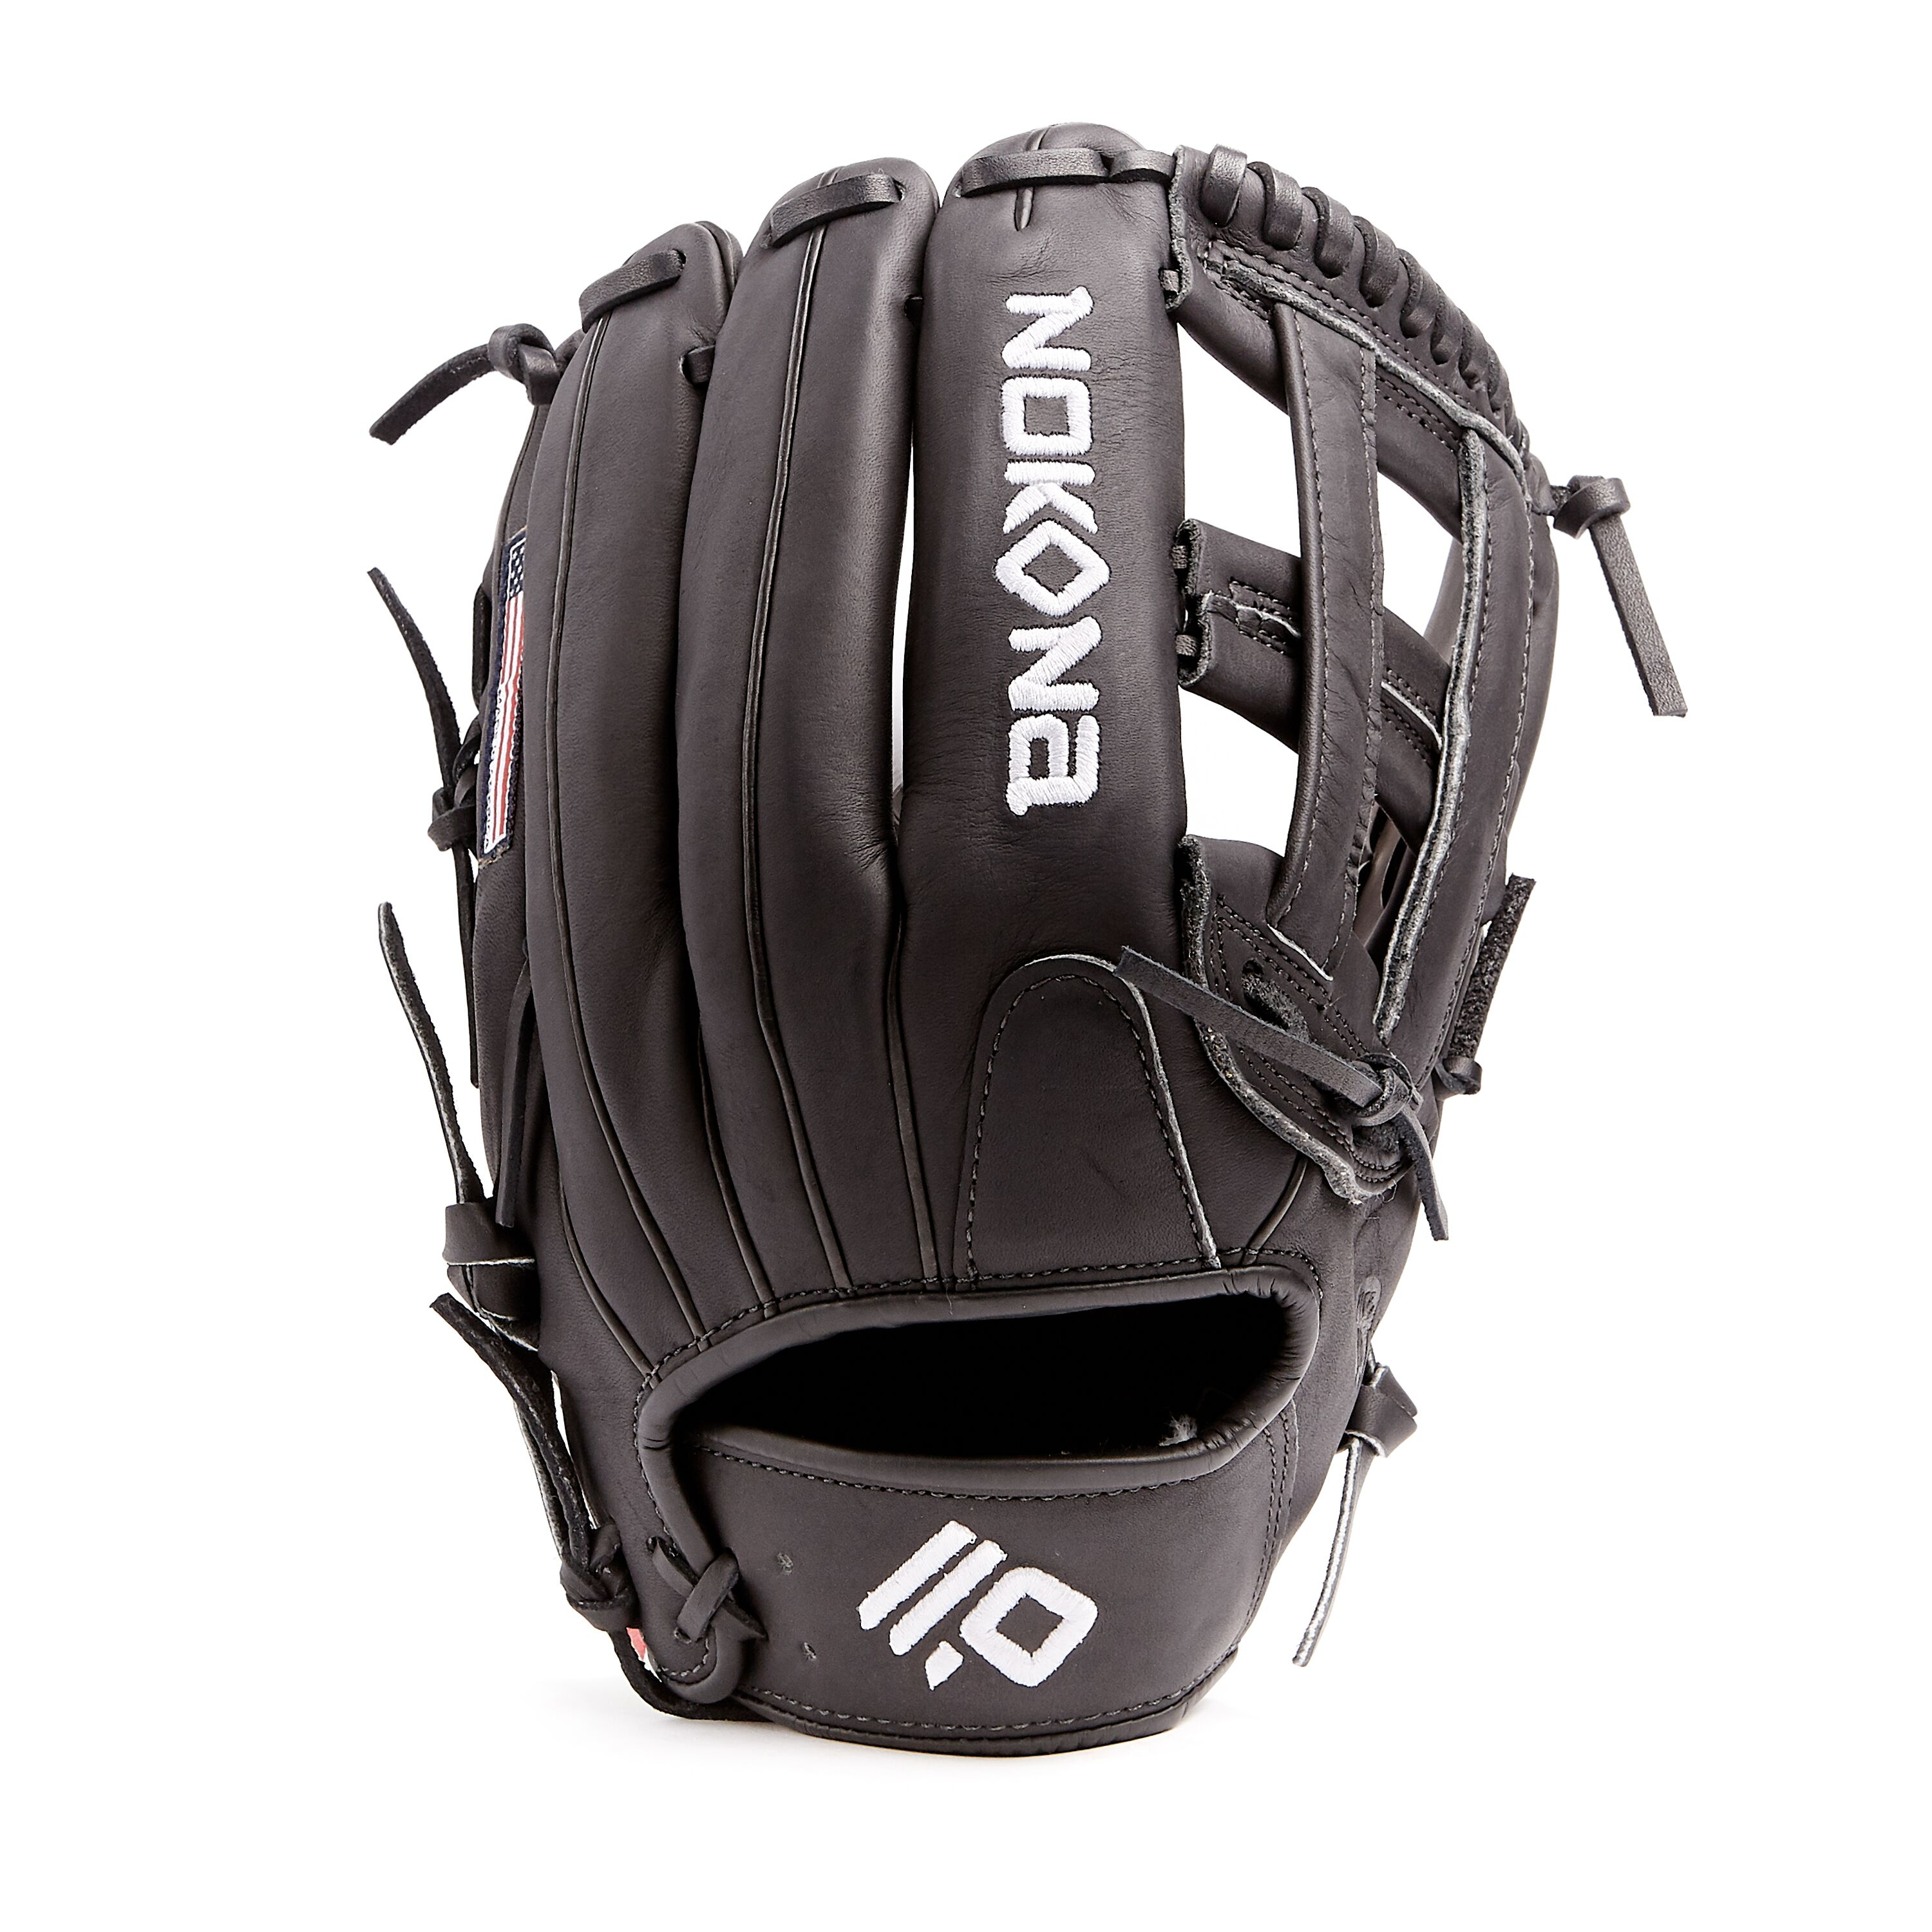 nokona-black-americankip-baseball-glove-12-75-right-hand-throw A-1275H-BK-RightHandThrow  808808894285 <span>The American Kip series made with the finest American steer hide